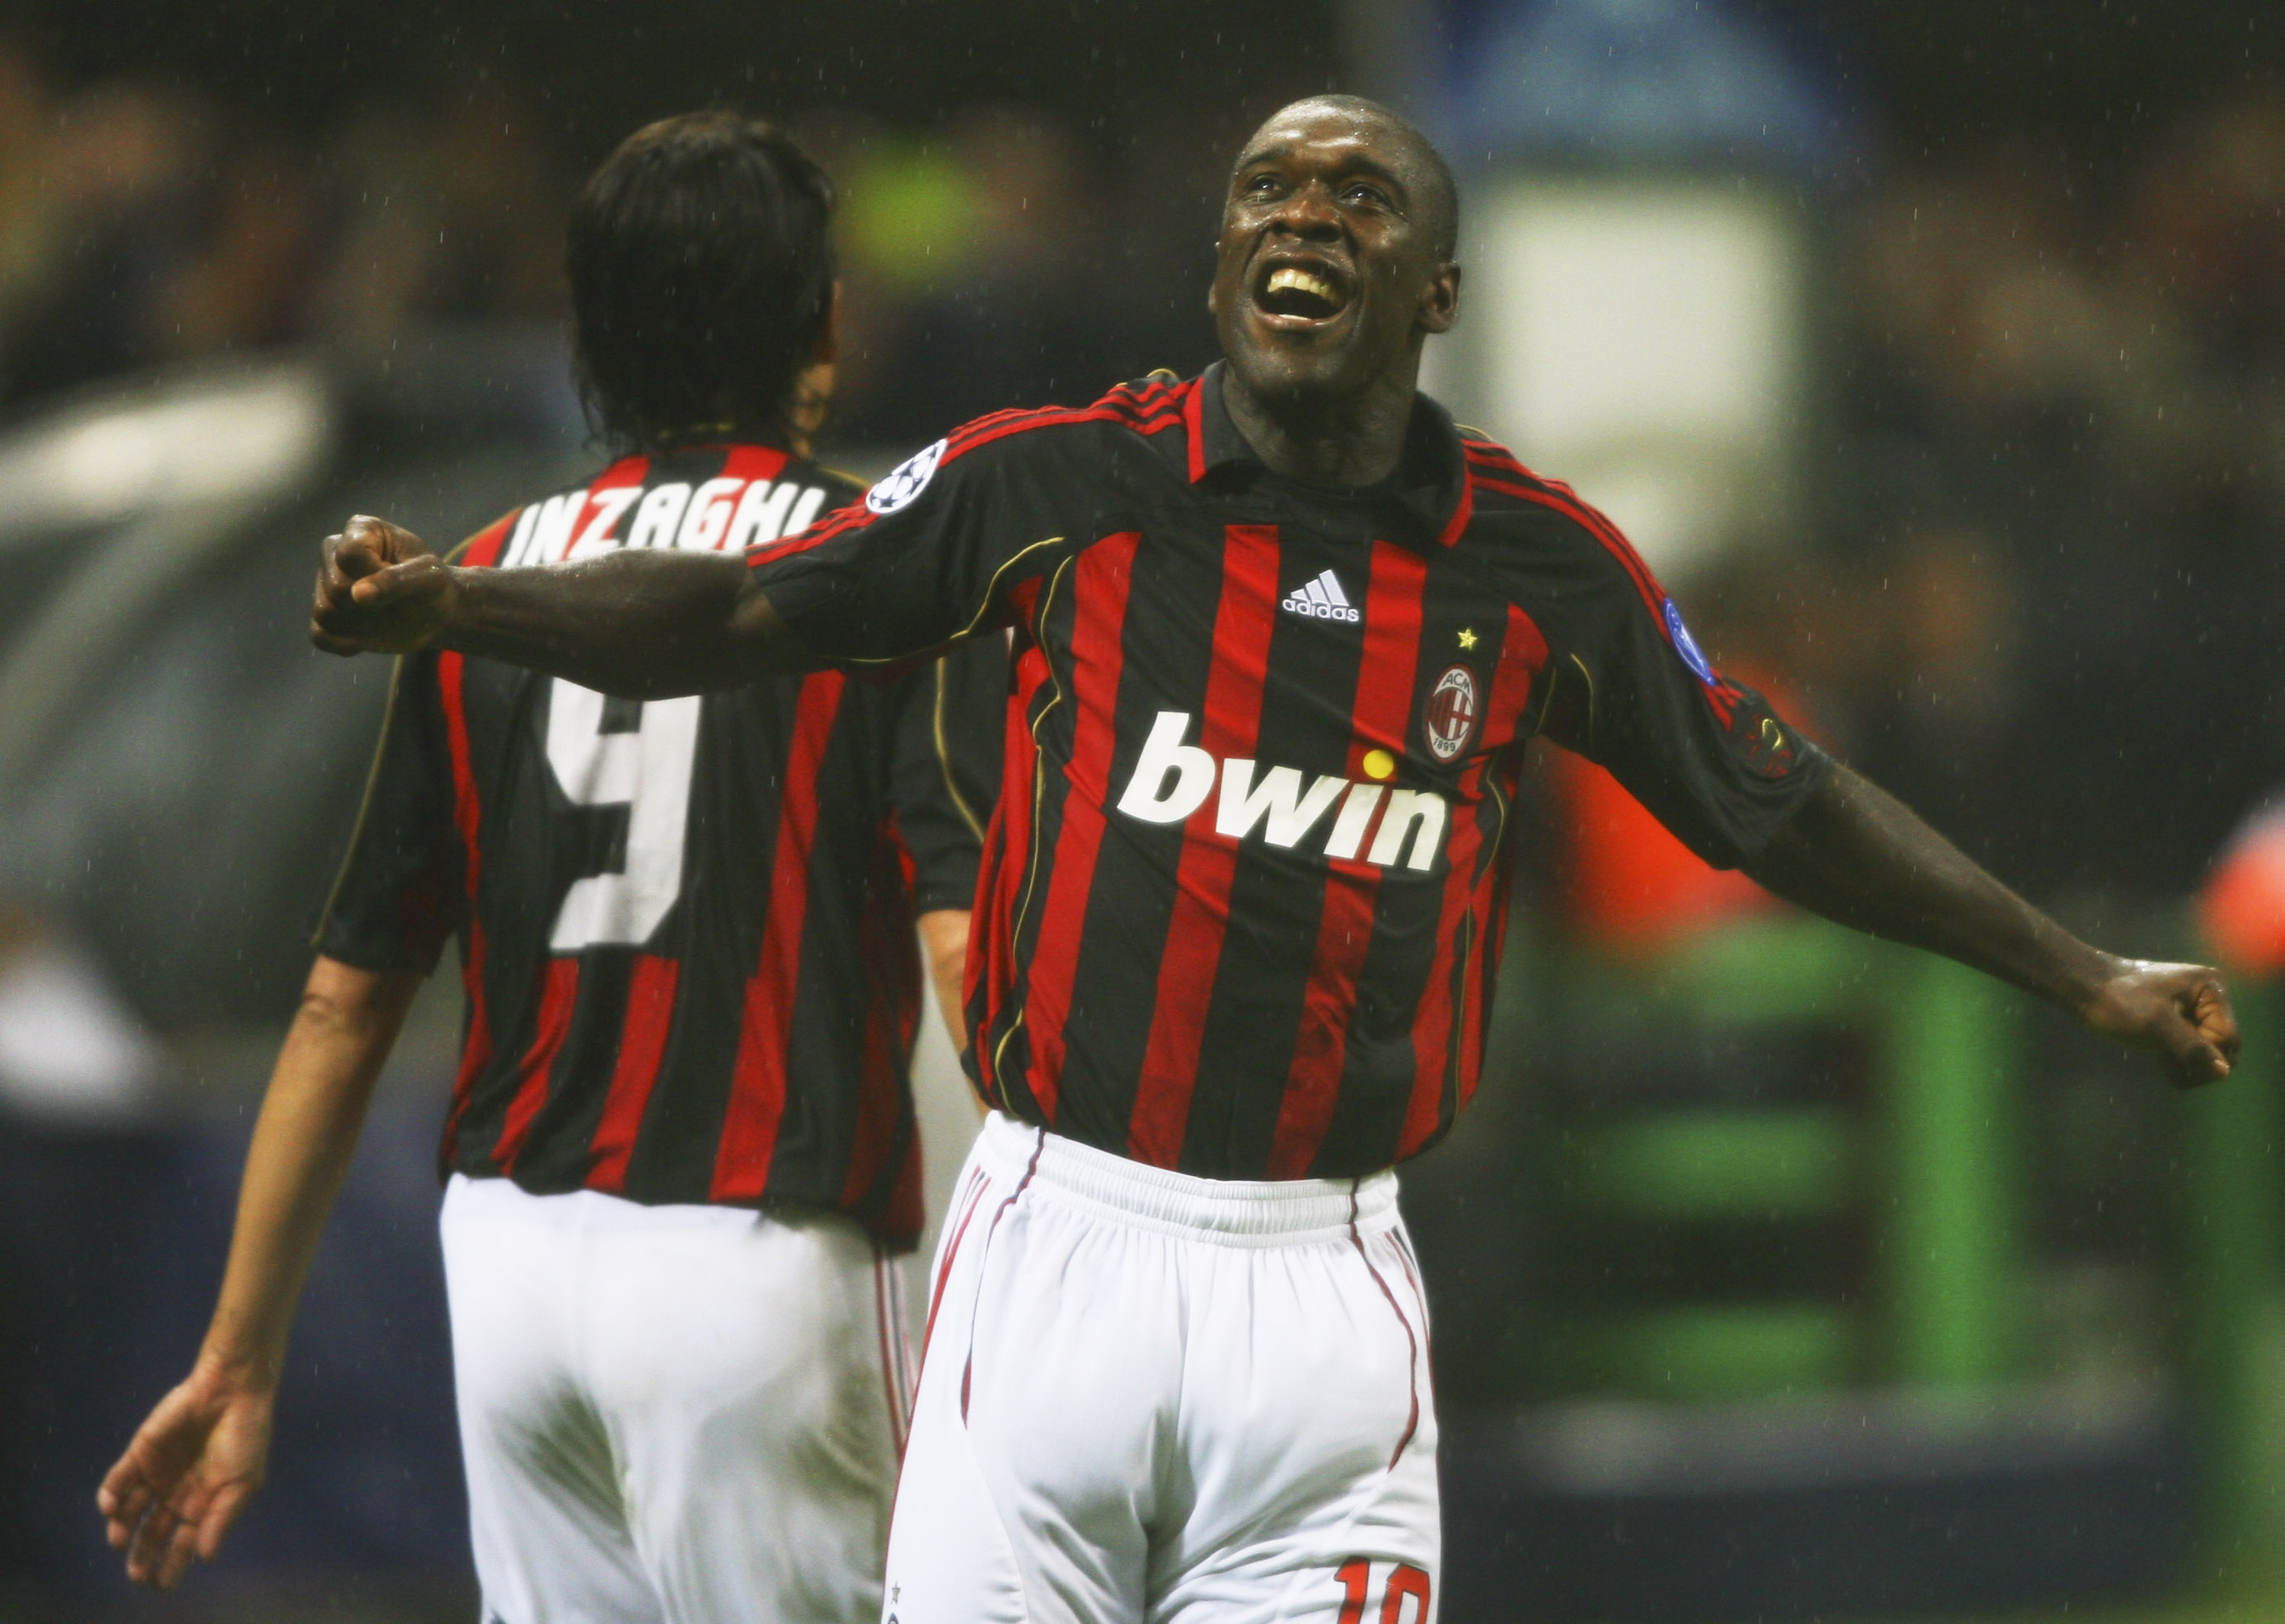 Ac Milan Vs Man Utd Player Ratings Who Ate All The Pies